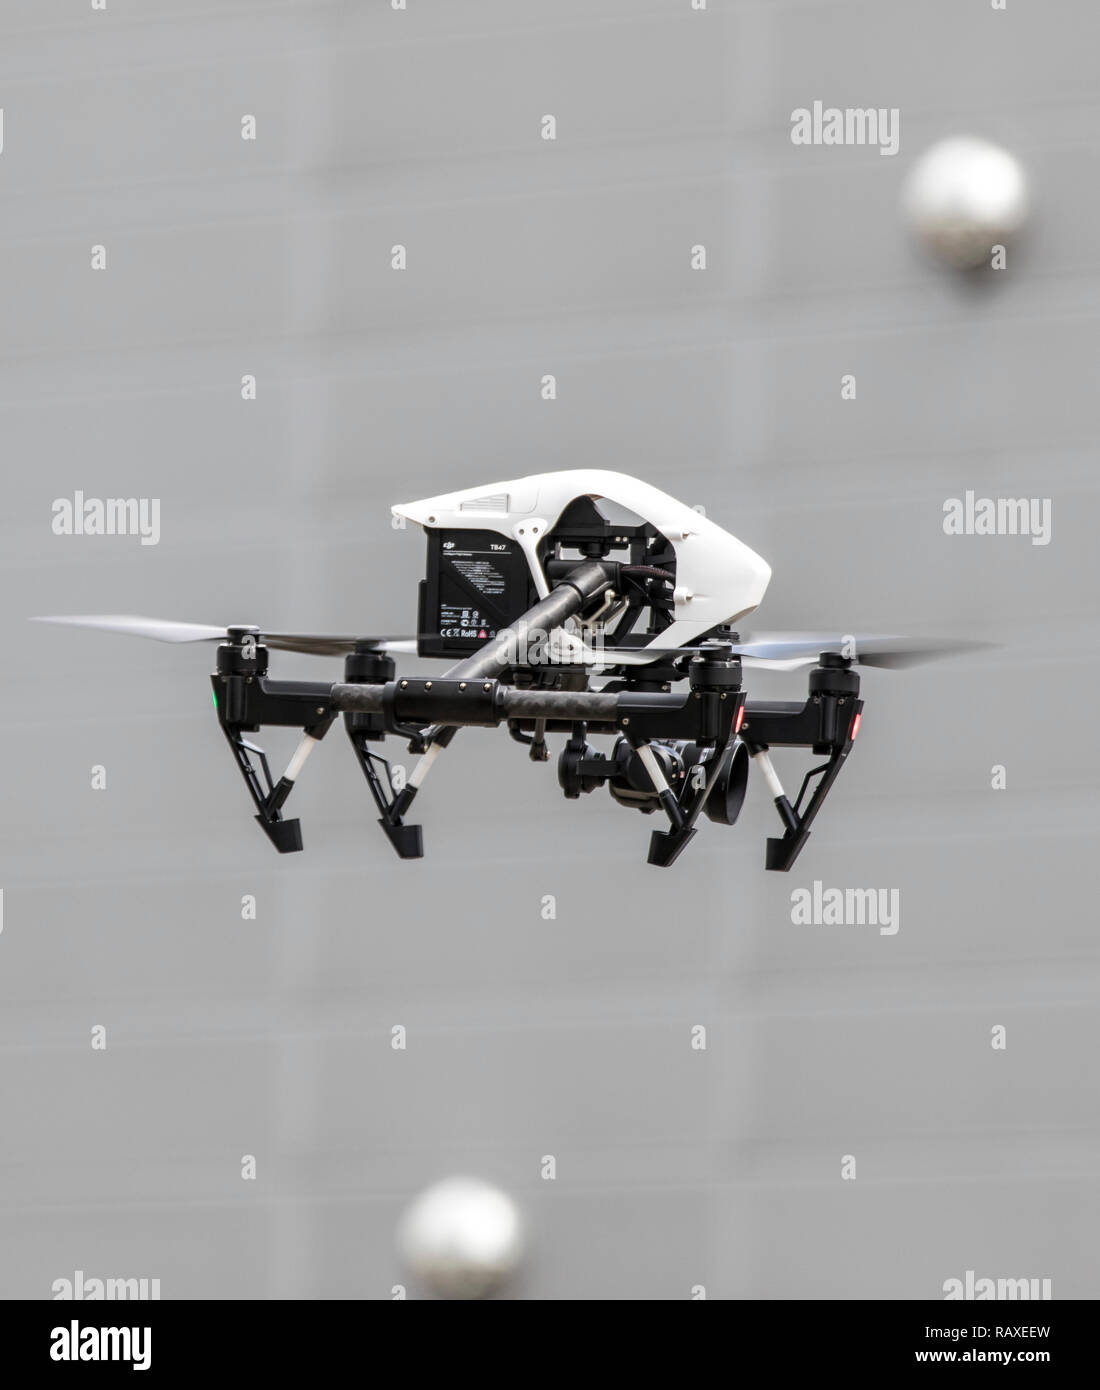 Drone, Multicopter, with Camera, Quadrocopter, Model DJI Inspire 1, - Stock Image